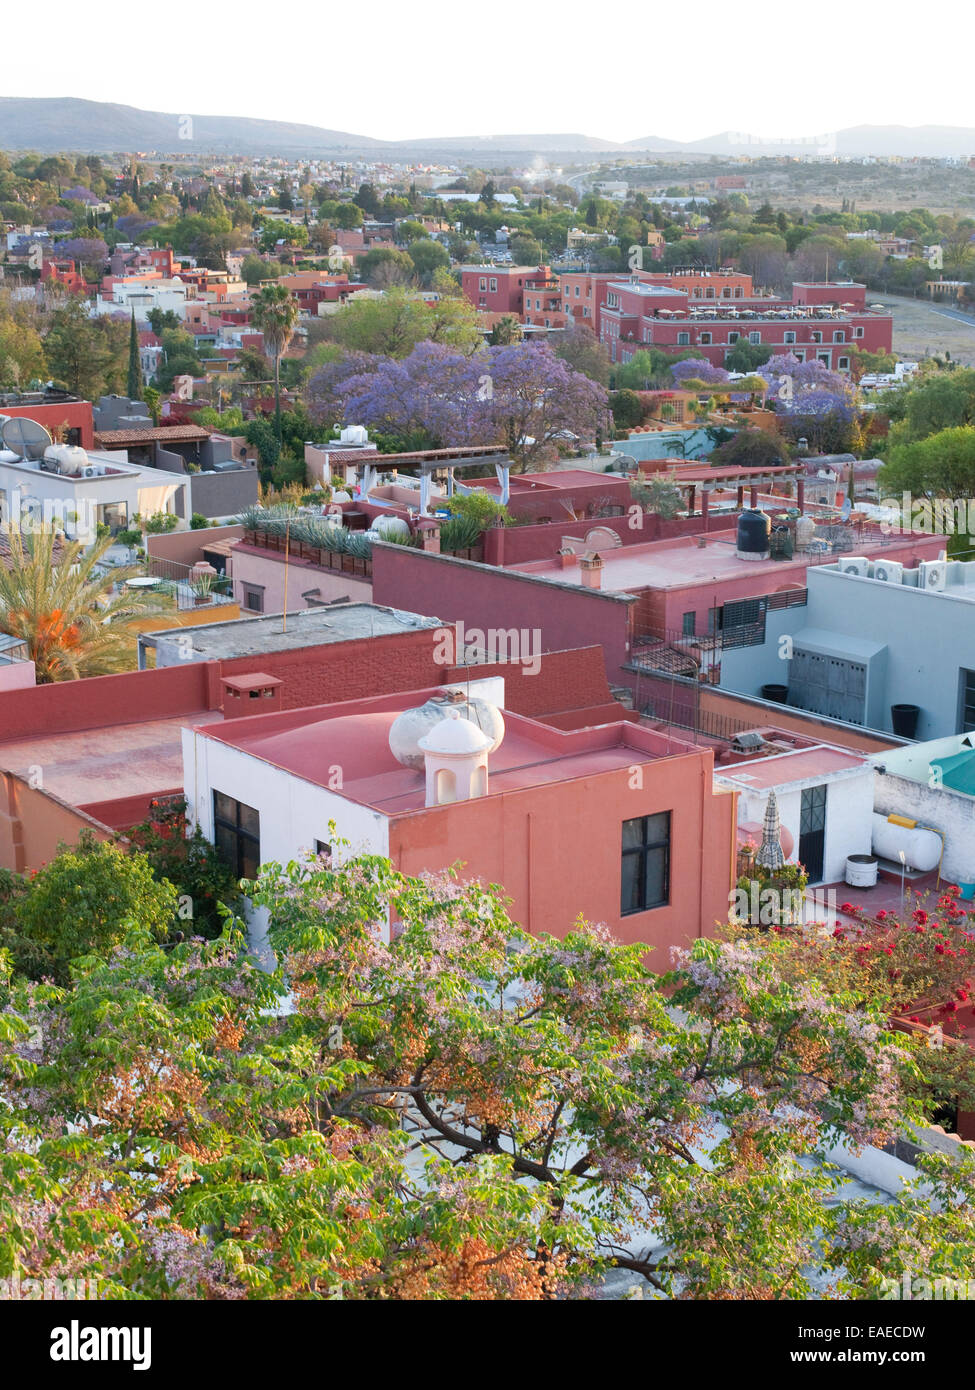 View of San Miguel de Allende, Mexico from above - Stock Image